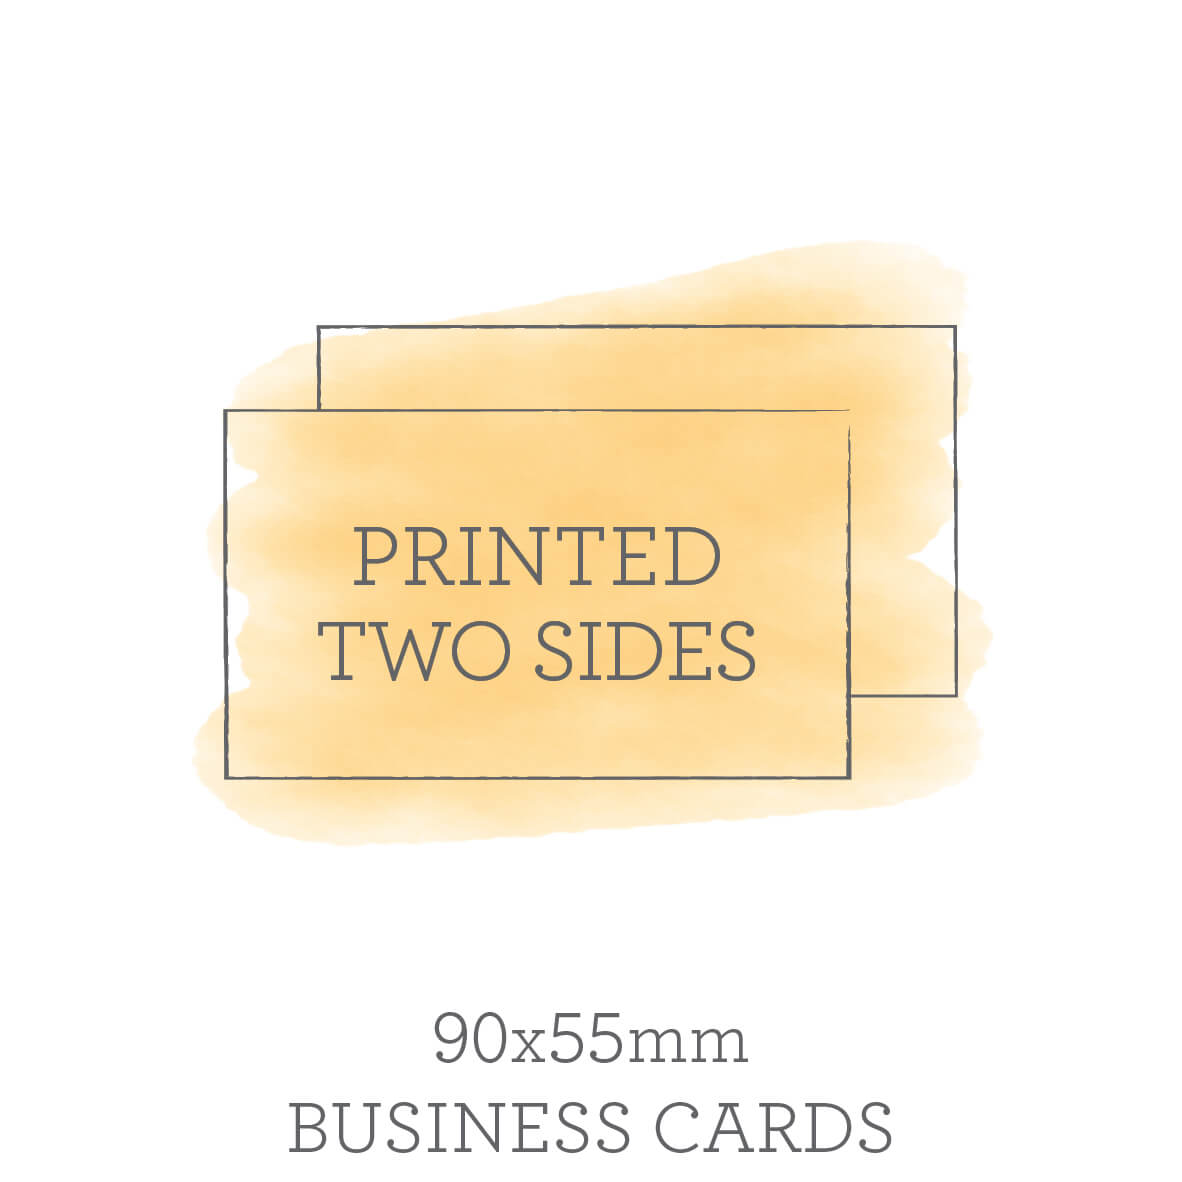 Double sided business cards 90x55mm double sided business cards reheart Choice Image